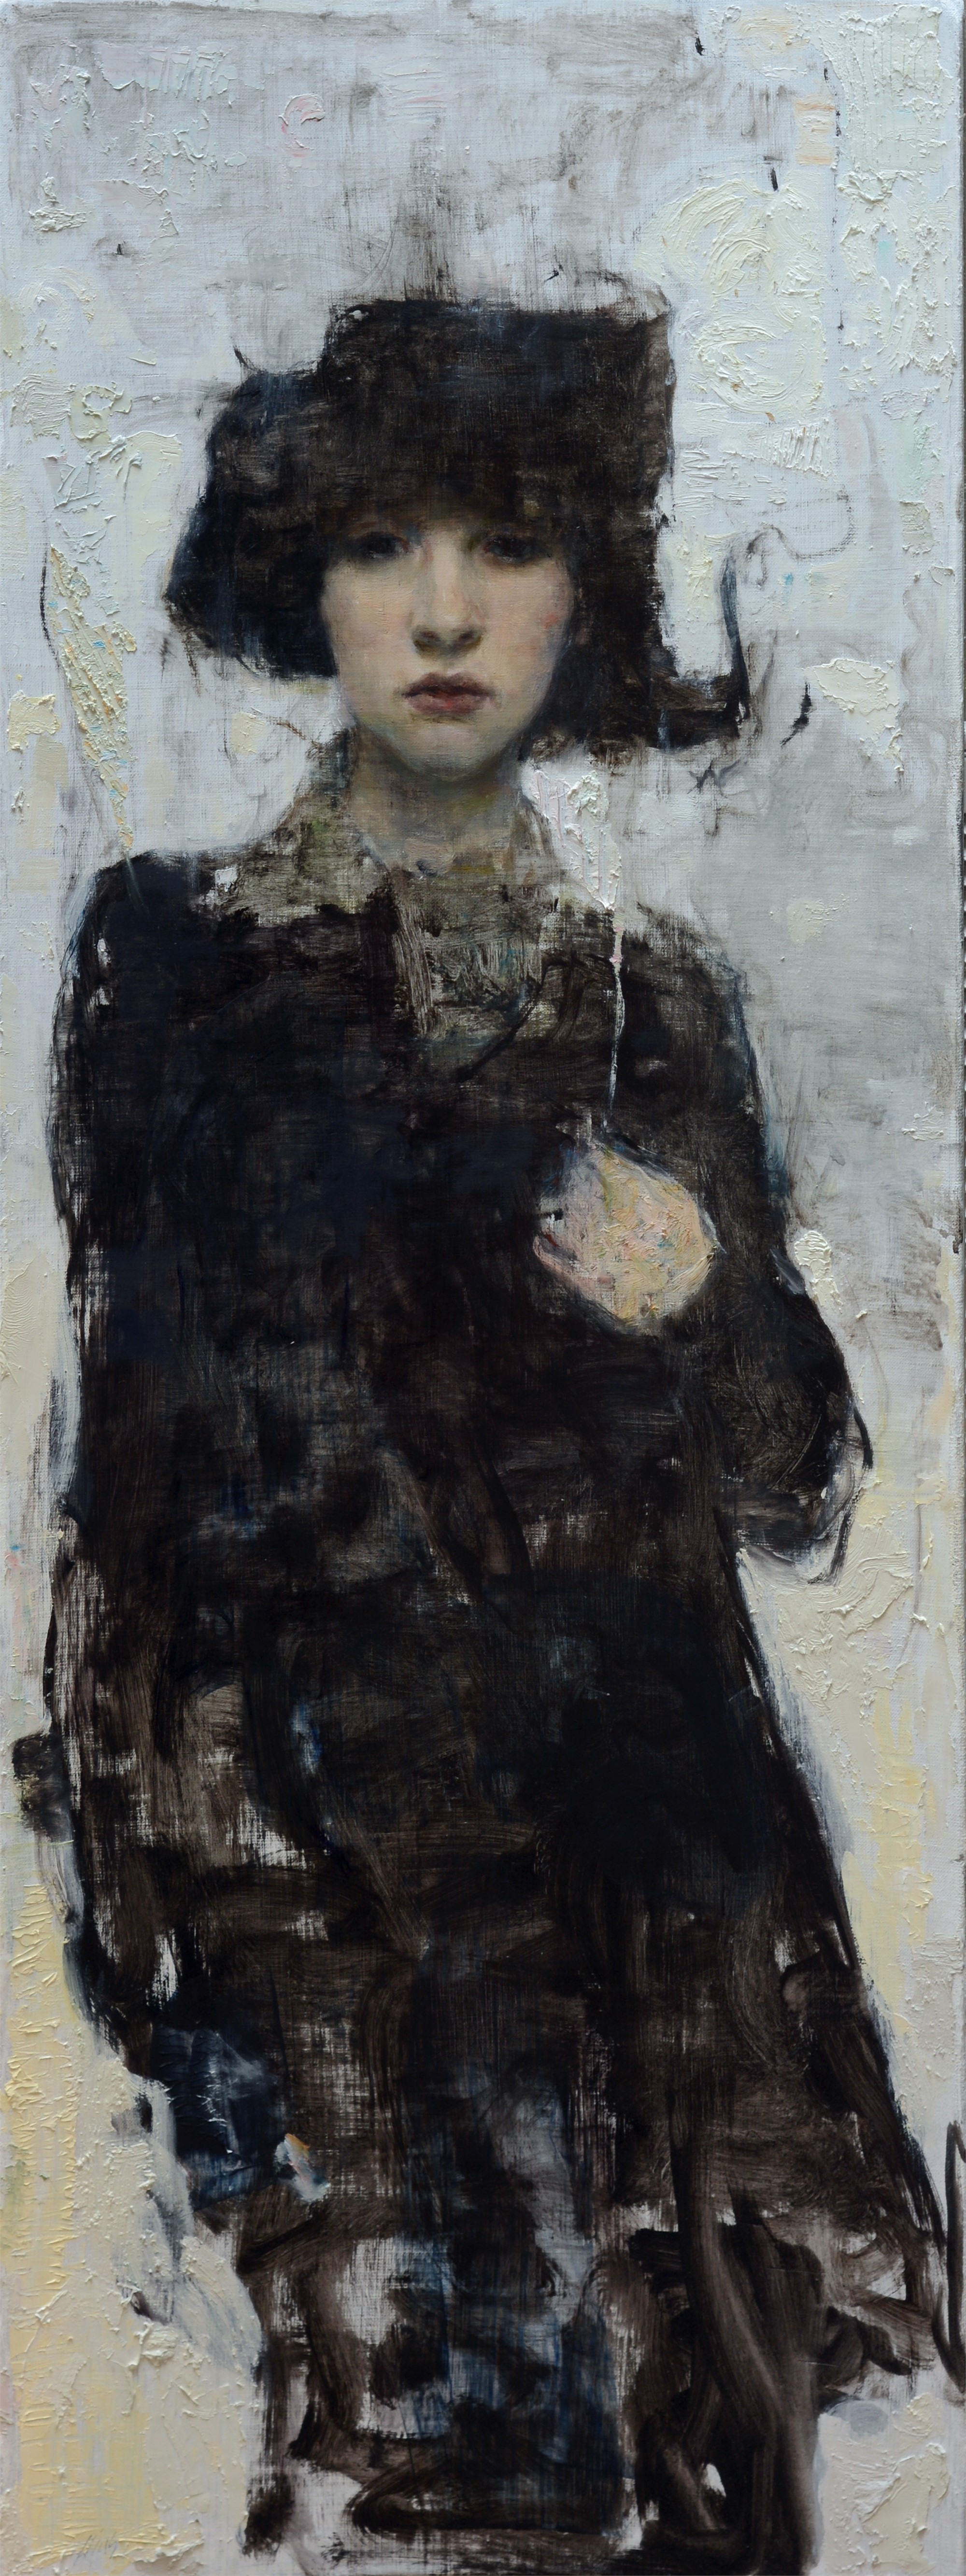 Untitled 2 by Ron Hicks